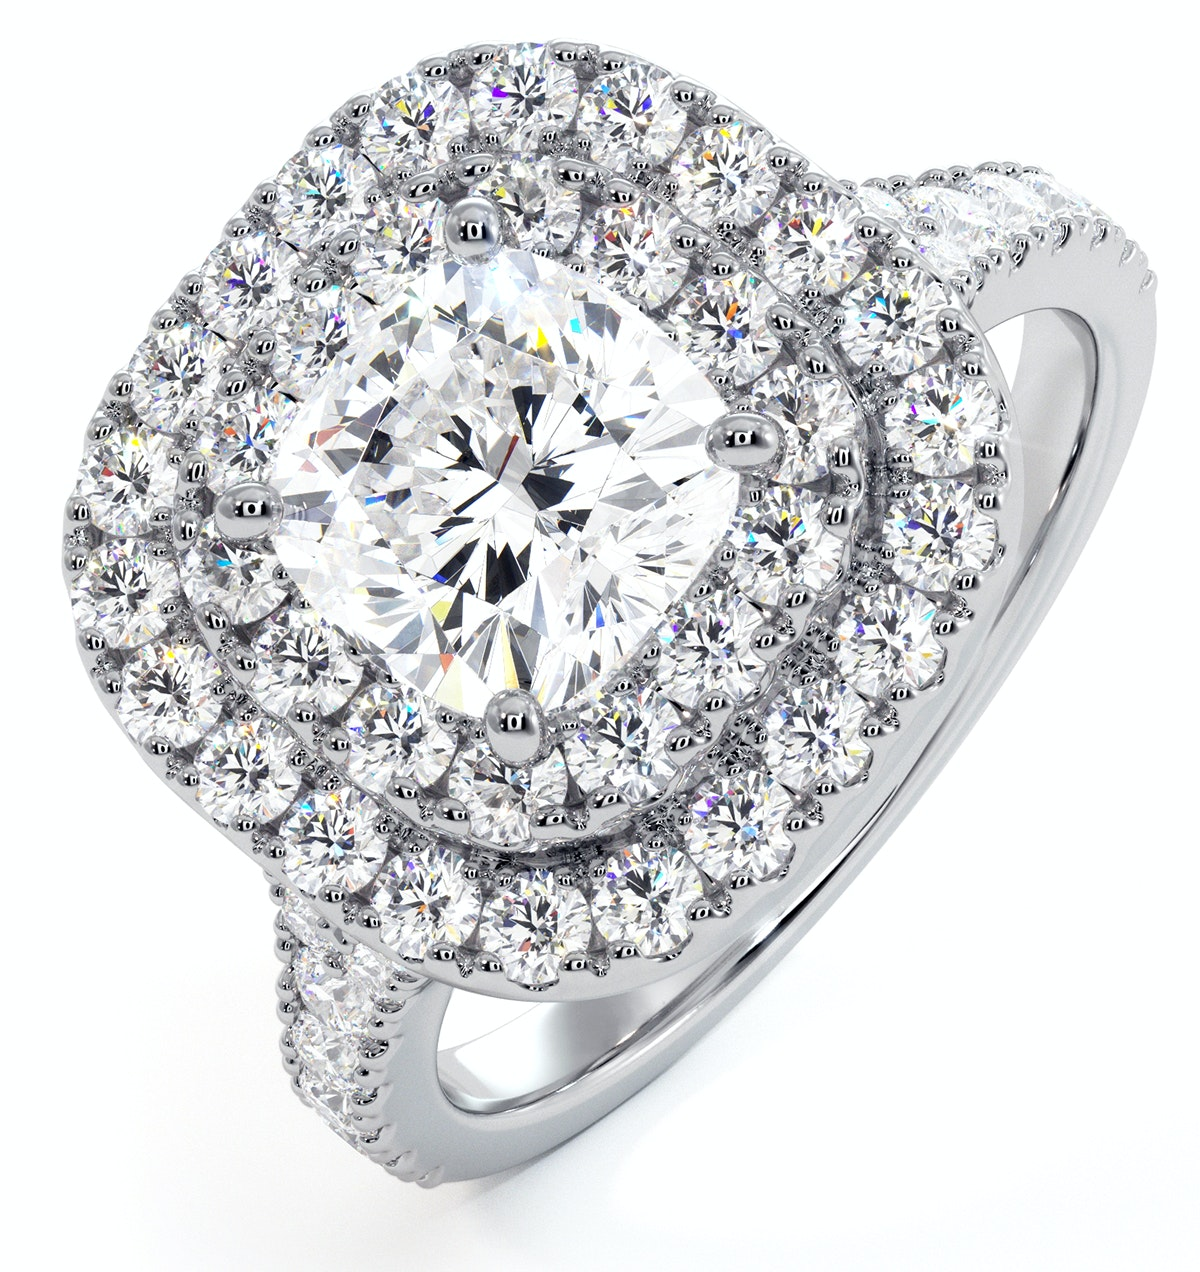 Anastasia GIA Diamond Halo Engagement Ring in Platinum 1.85ct G/VS2